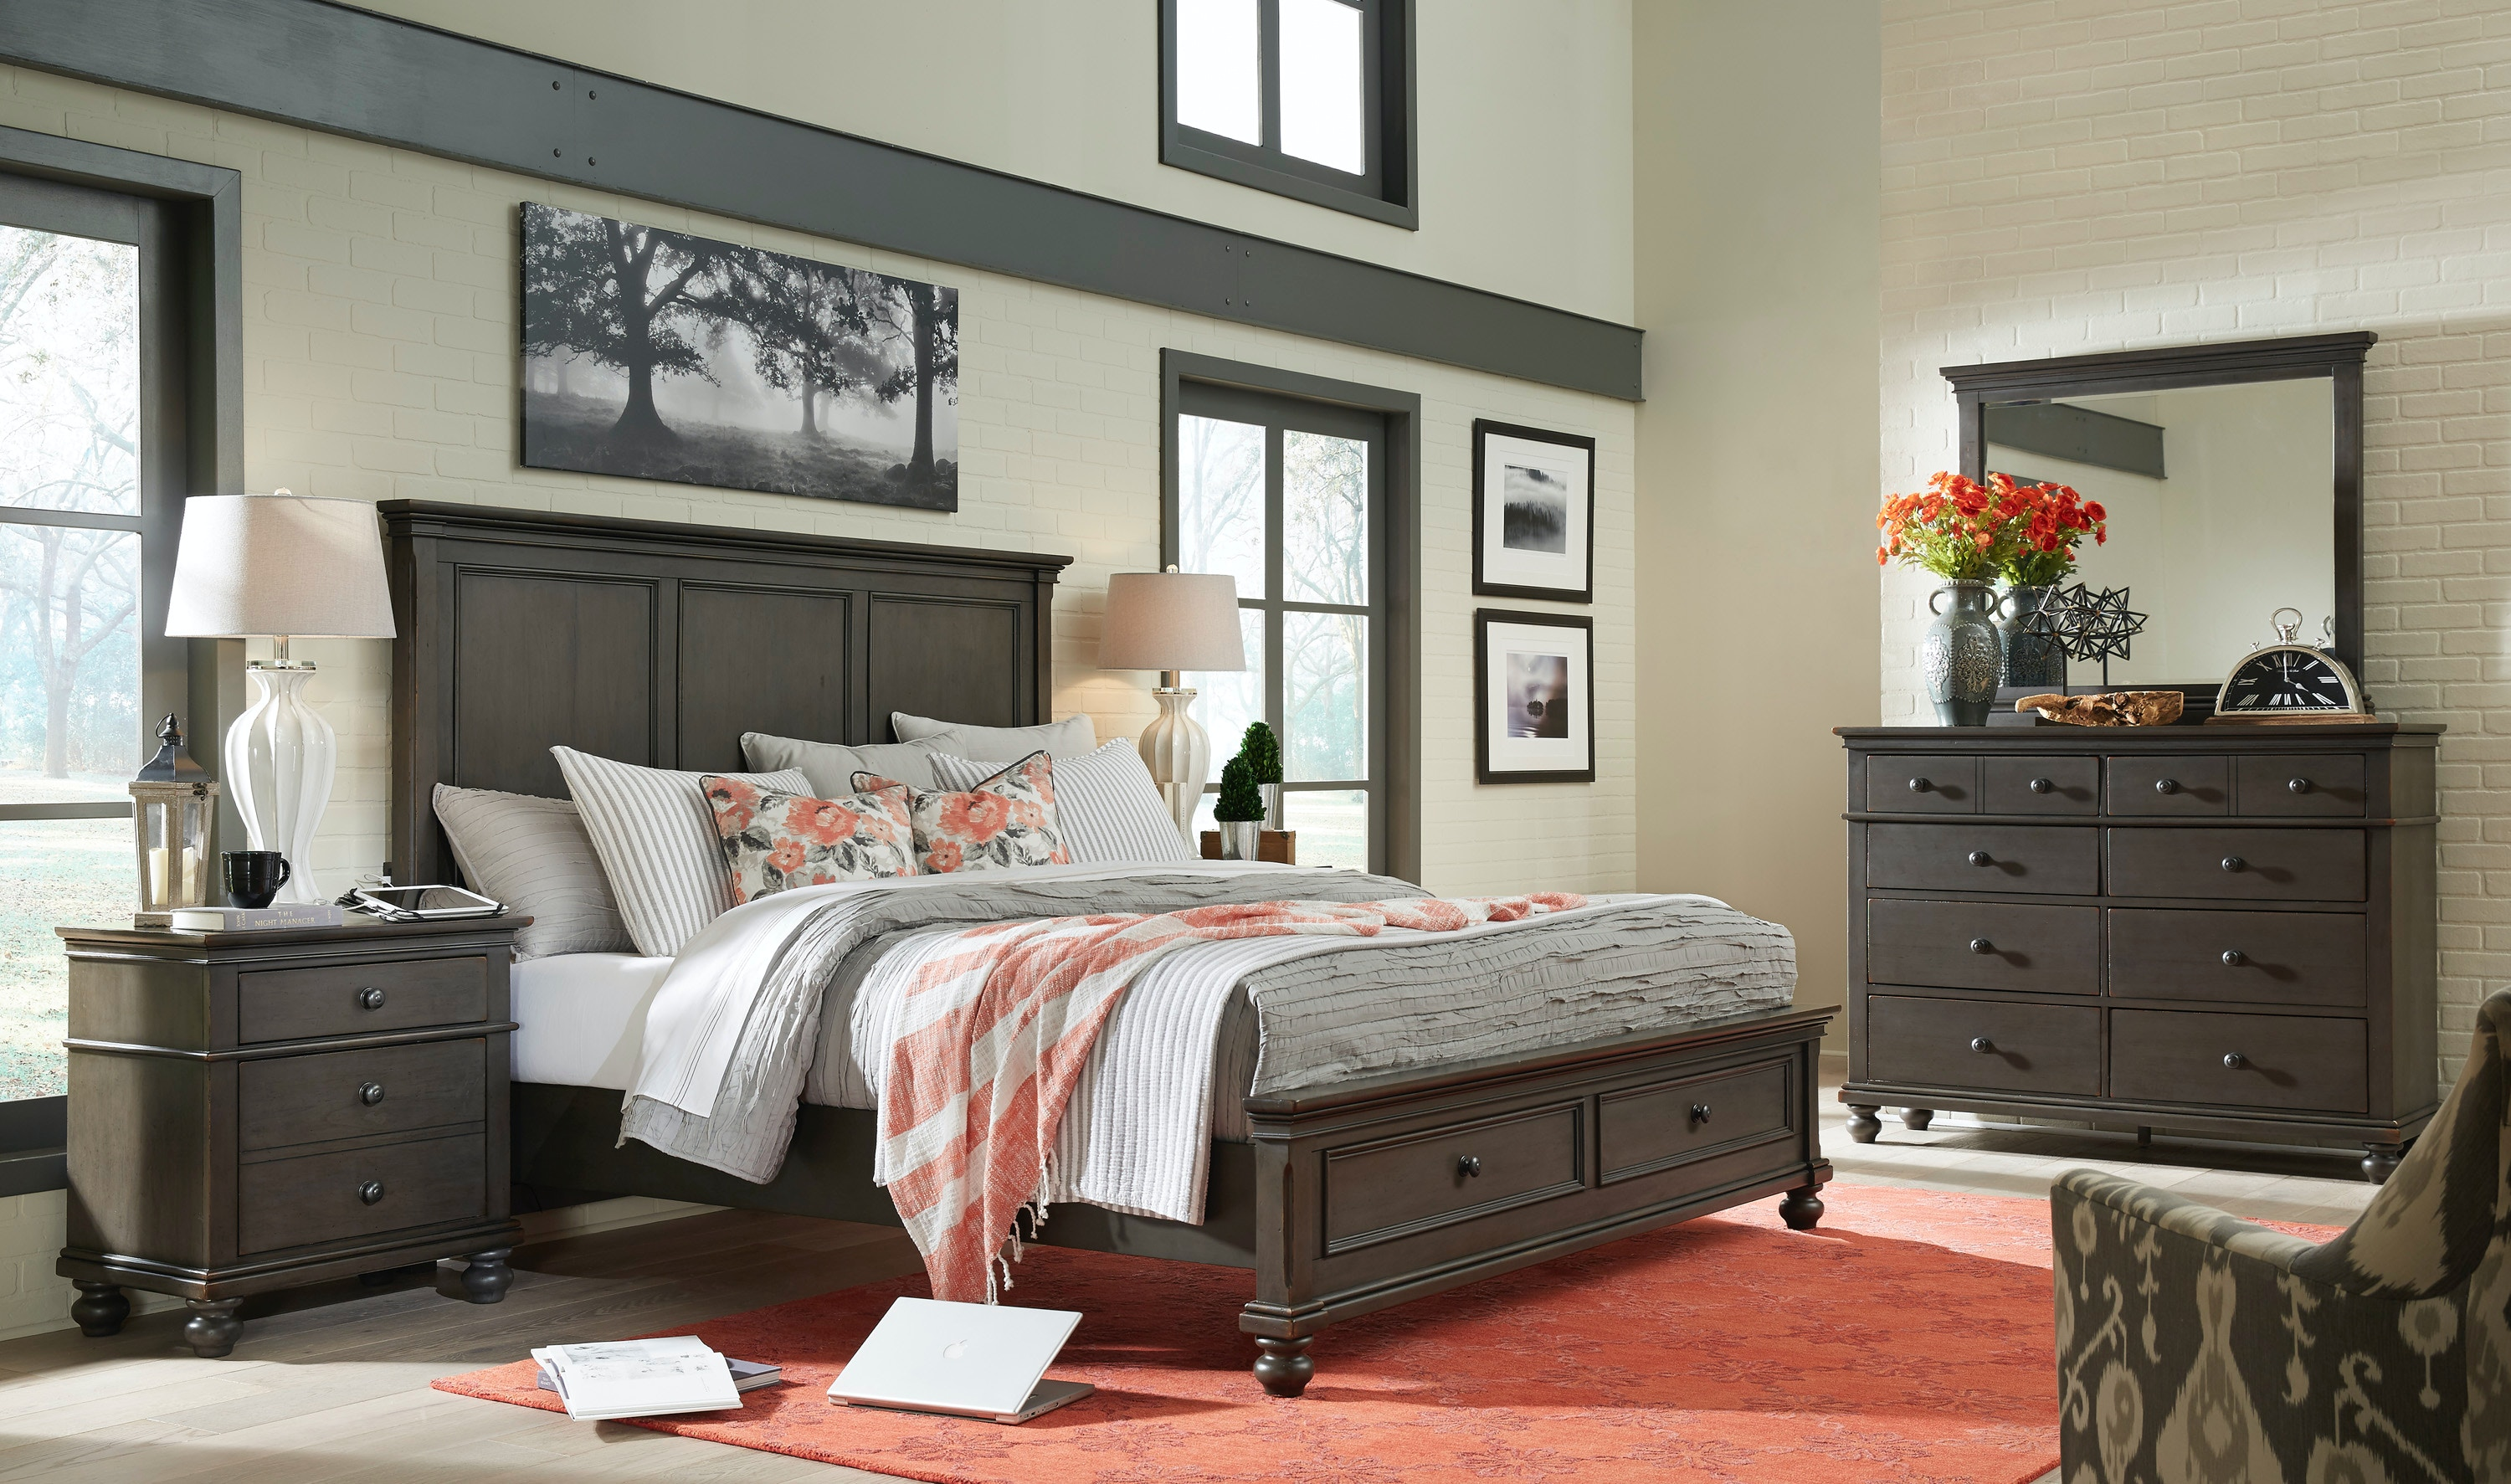 Exceptional Aspenhome 5 Piece King Panel Storage Bed Set Oxford Panel SB PEP